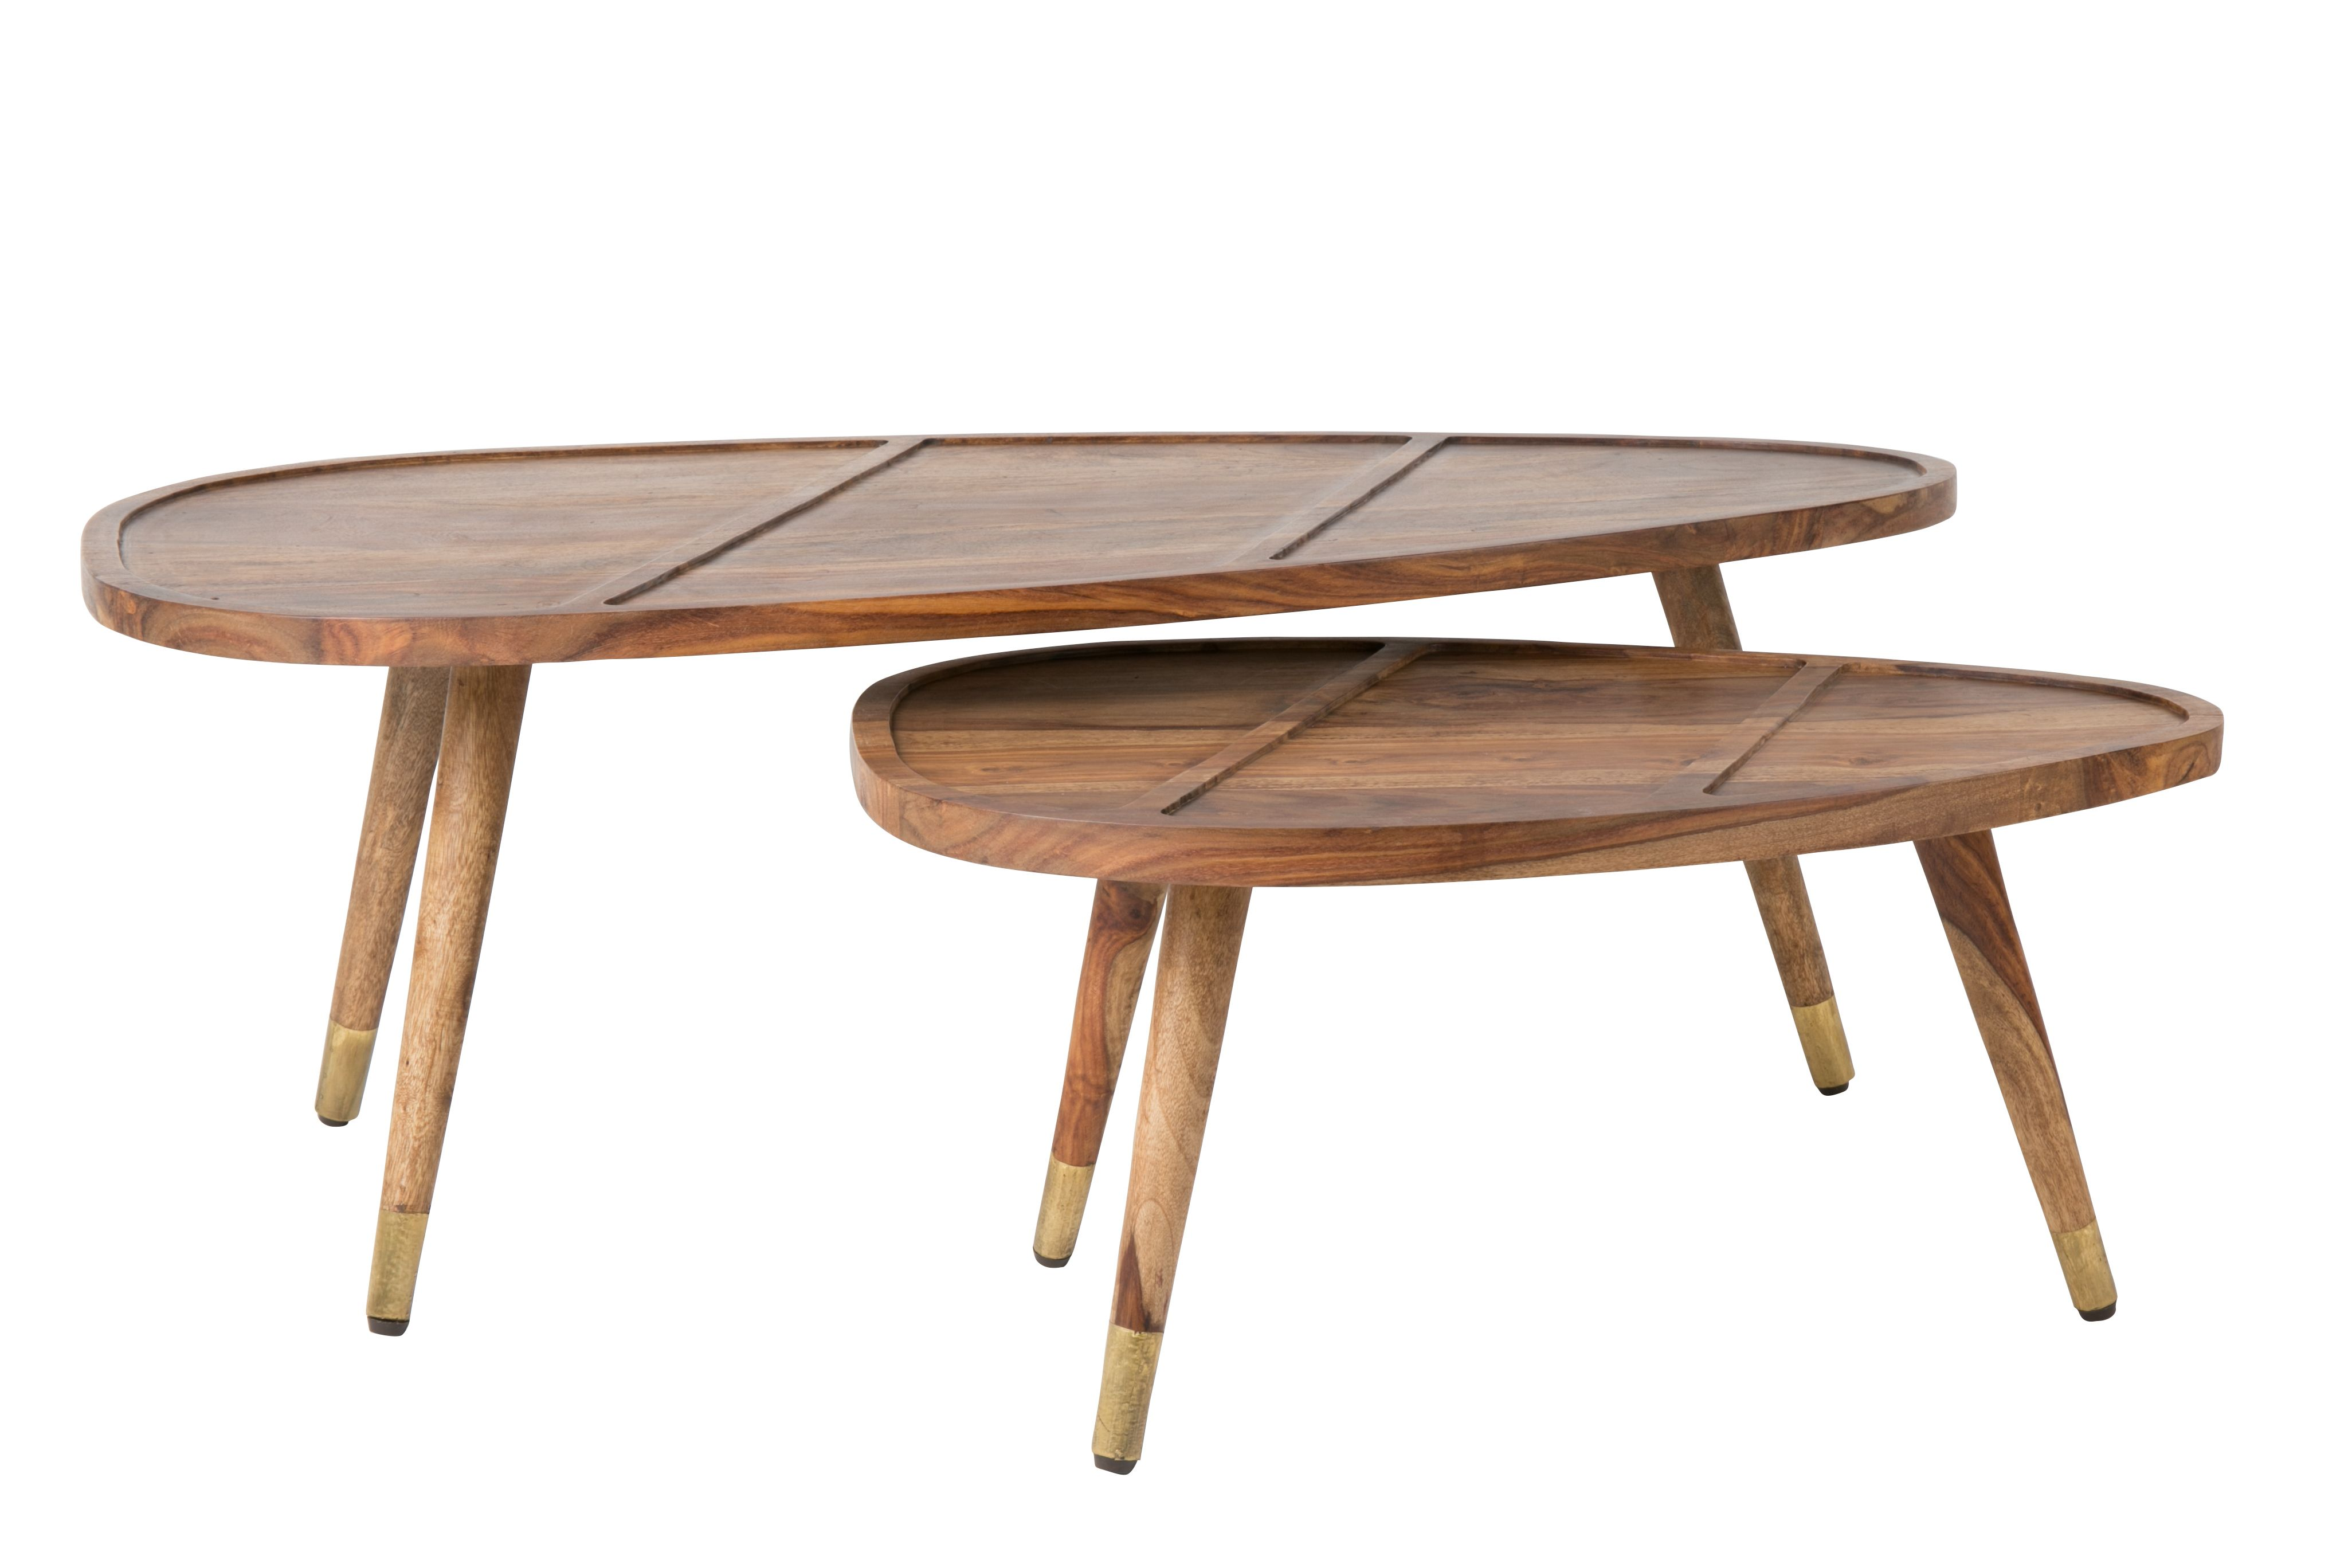 Sham Coffee Table Set Of 2 Sidetable Tabled Appoint Beistelltisch Bijzettafel Coffee Table Coffe Table Table [ 2736 x 4104 Pixel ]